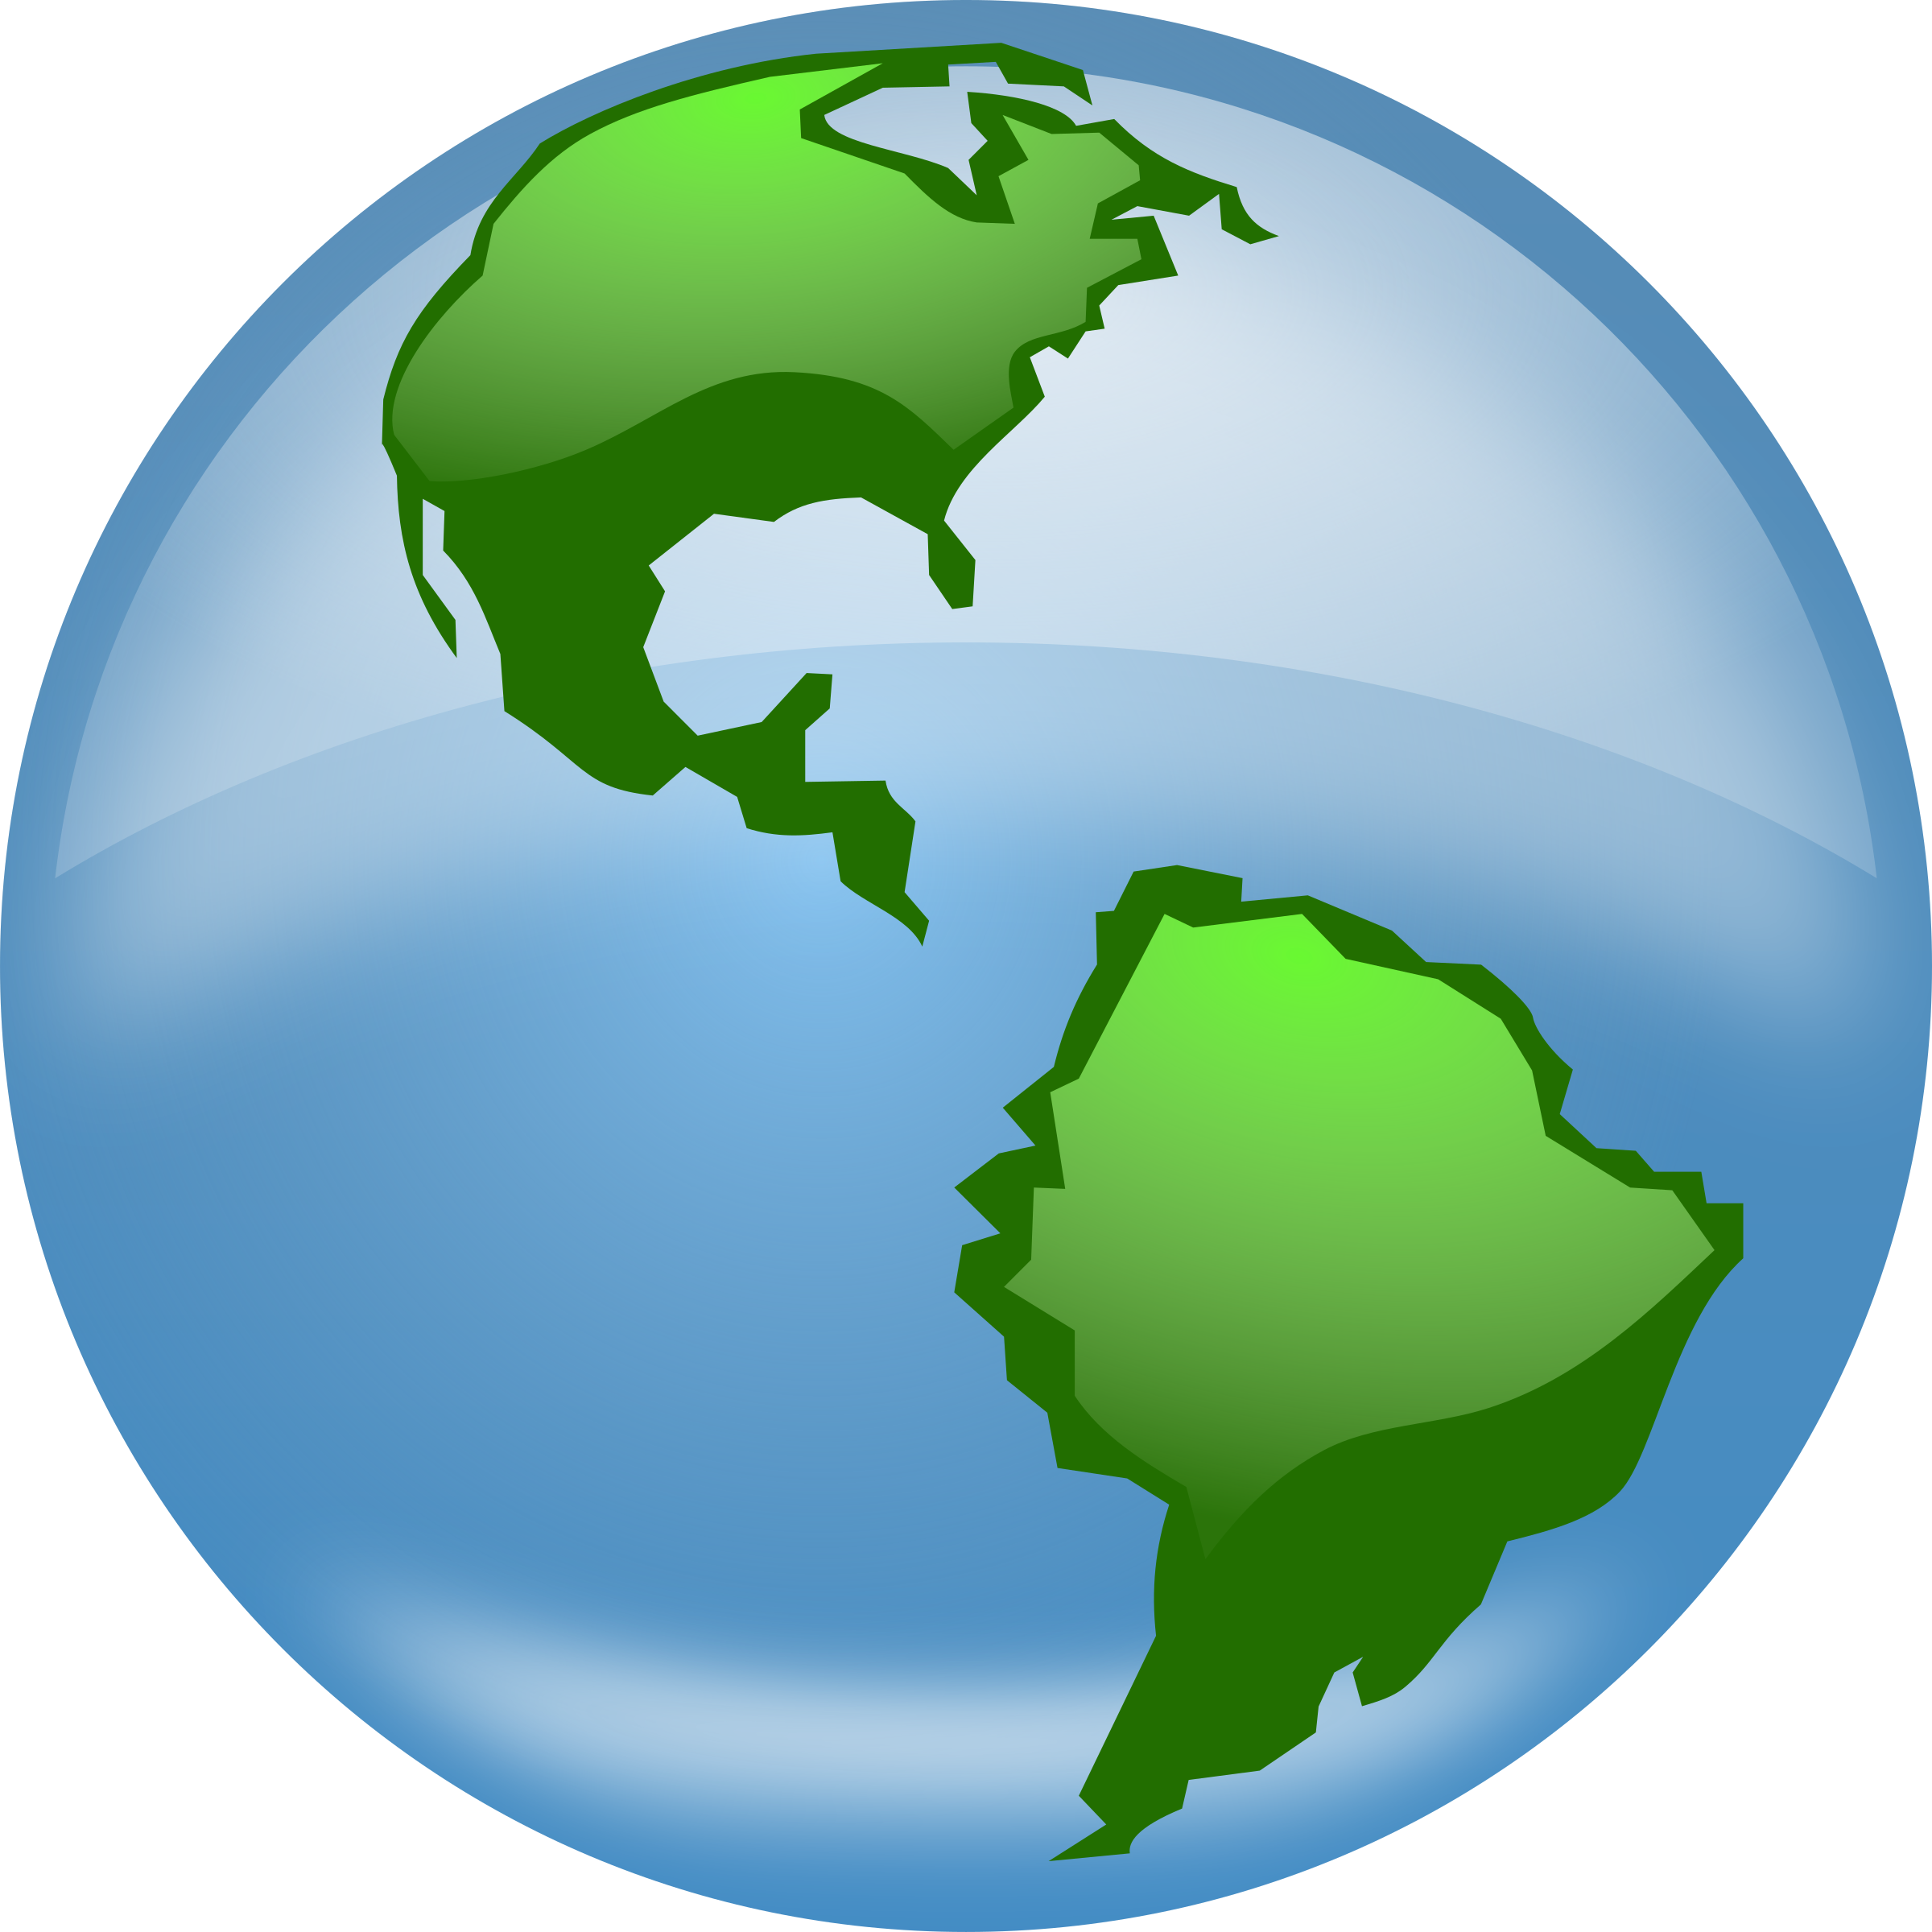 Clipart globe current event. Glossy big image png